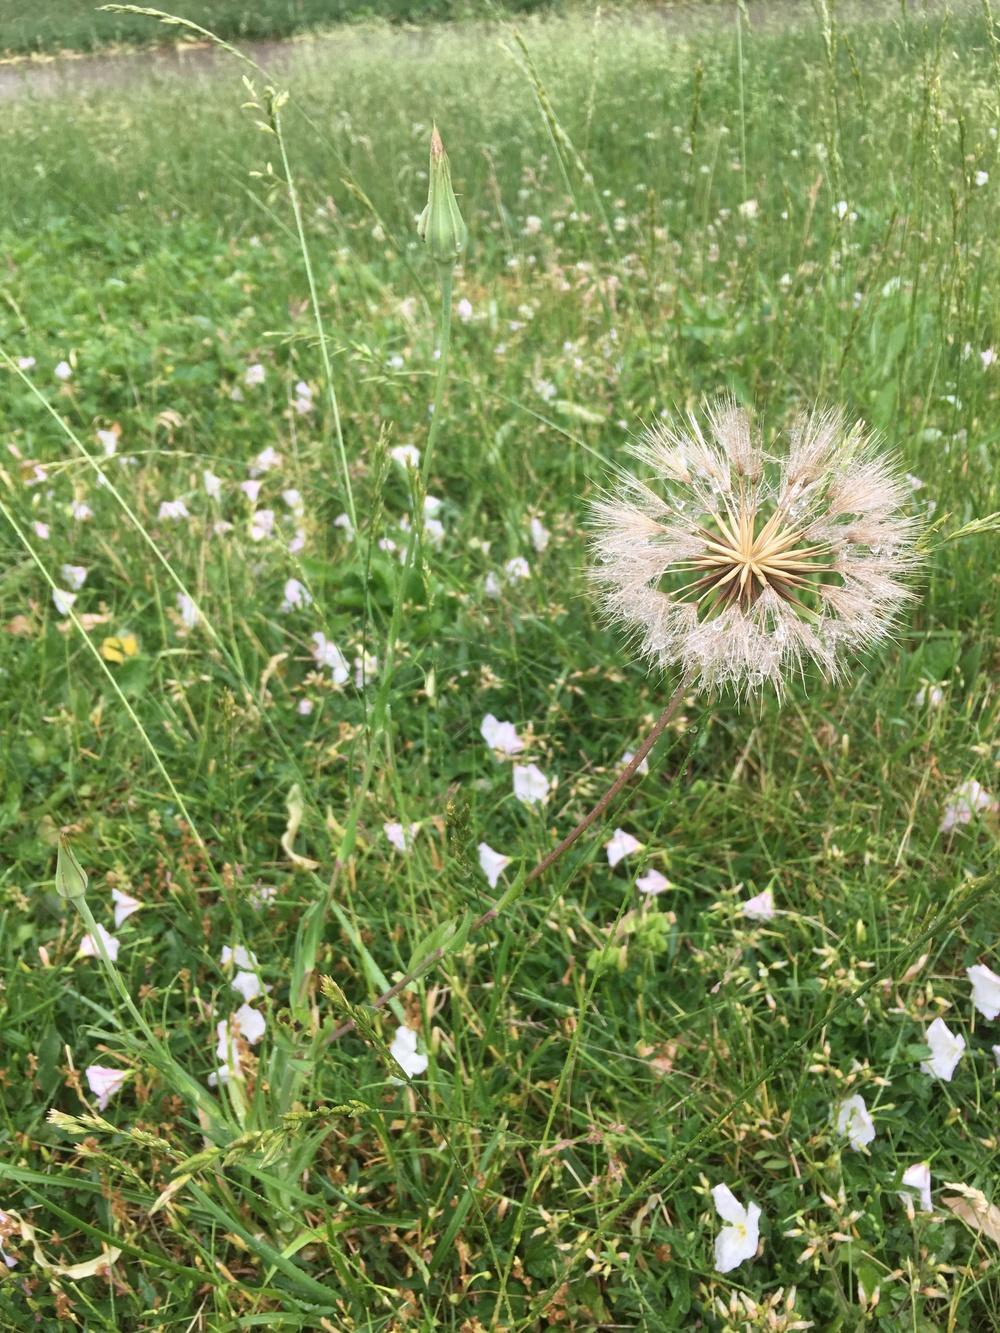 Plant Id Forum Strange Yellow Flower Weed Sprang Up On Lawn